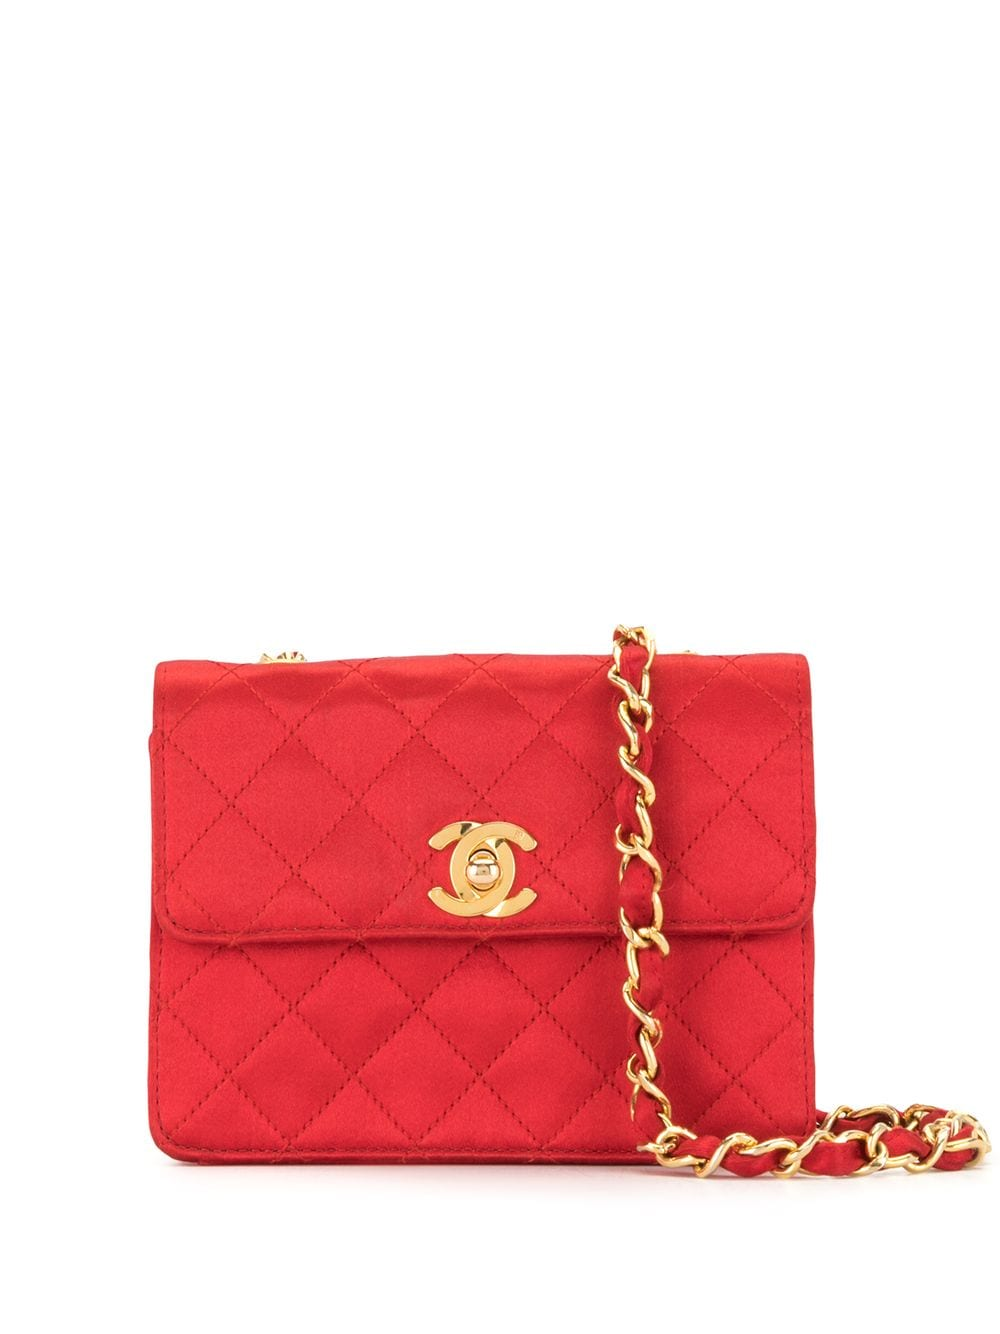 Chanel Pre-Owned 1990s Umhängetasche - Rot